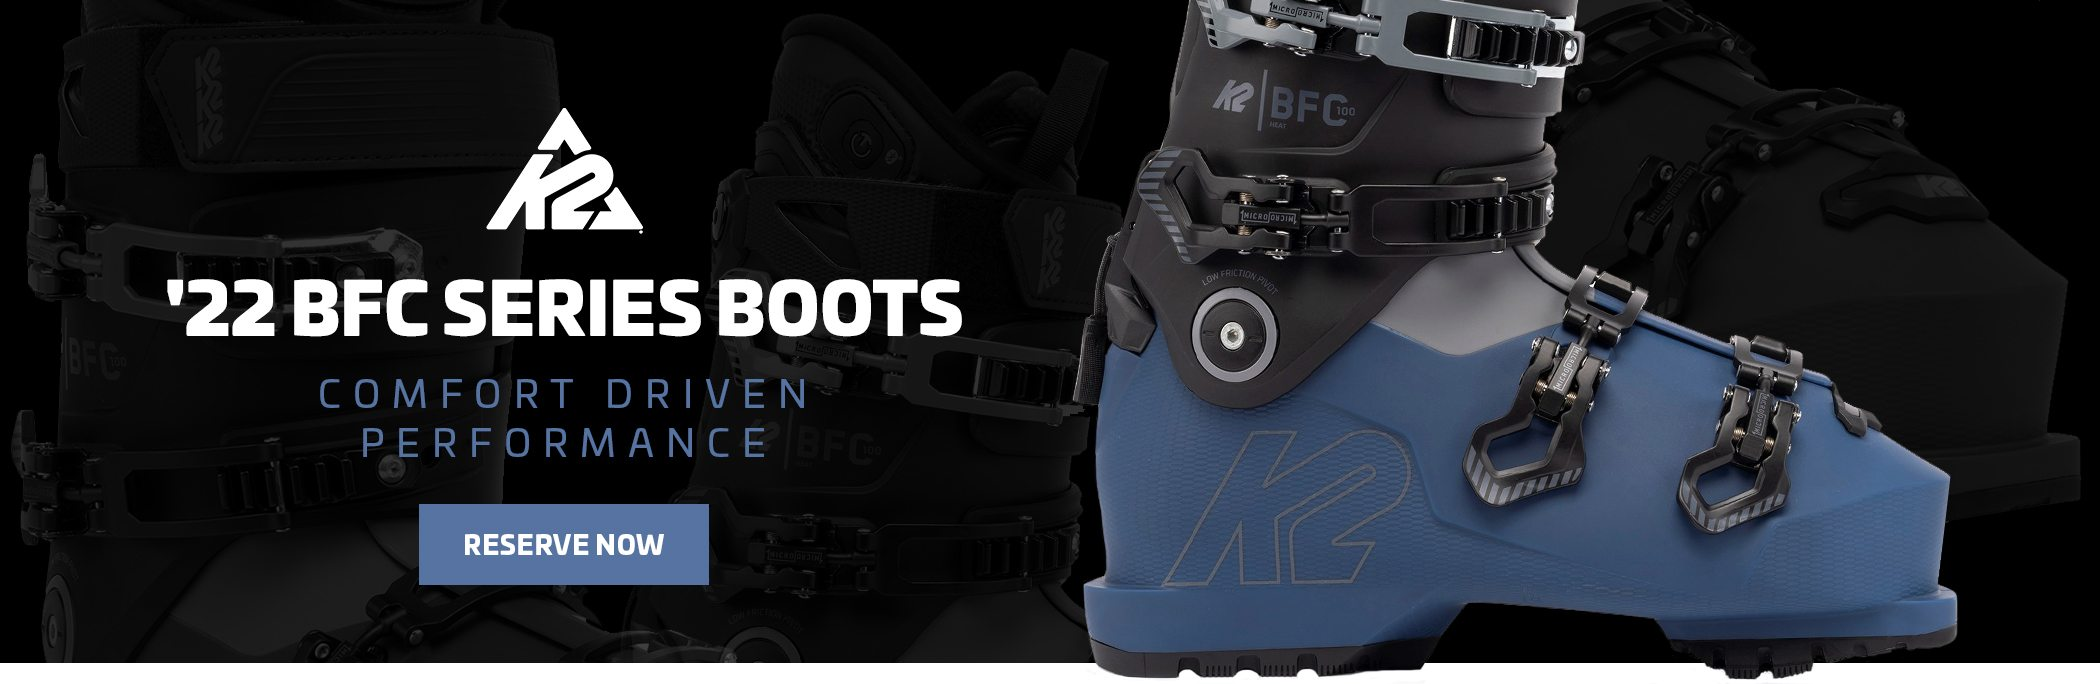 K2 '22 BFC SERIES BOOTS